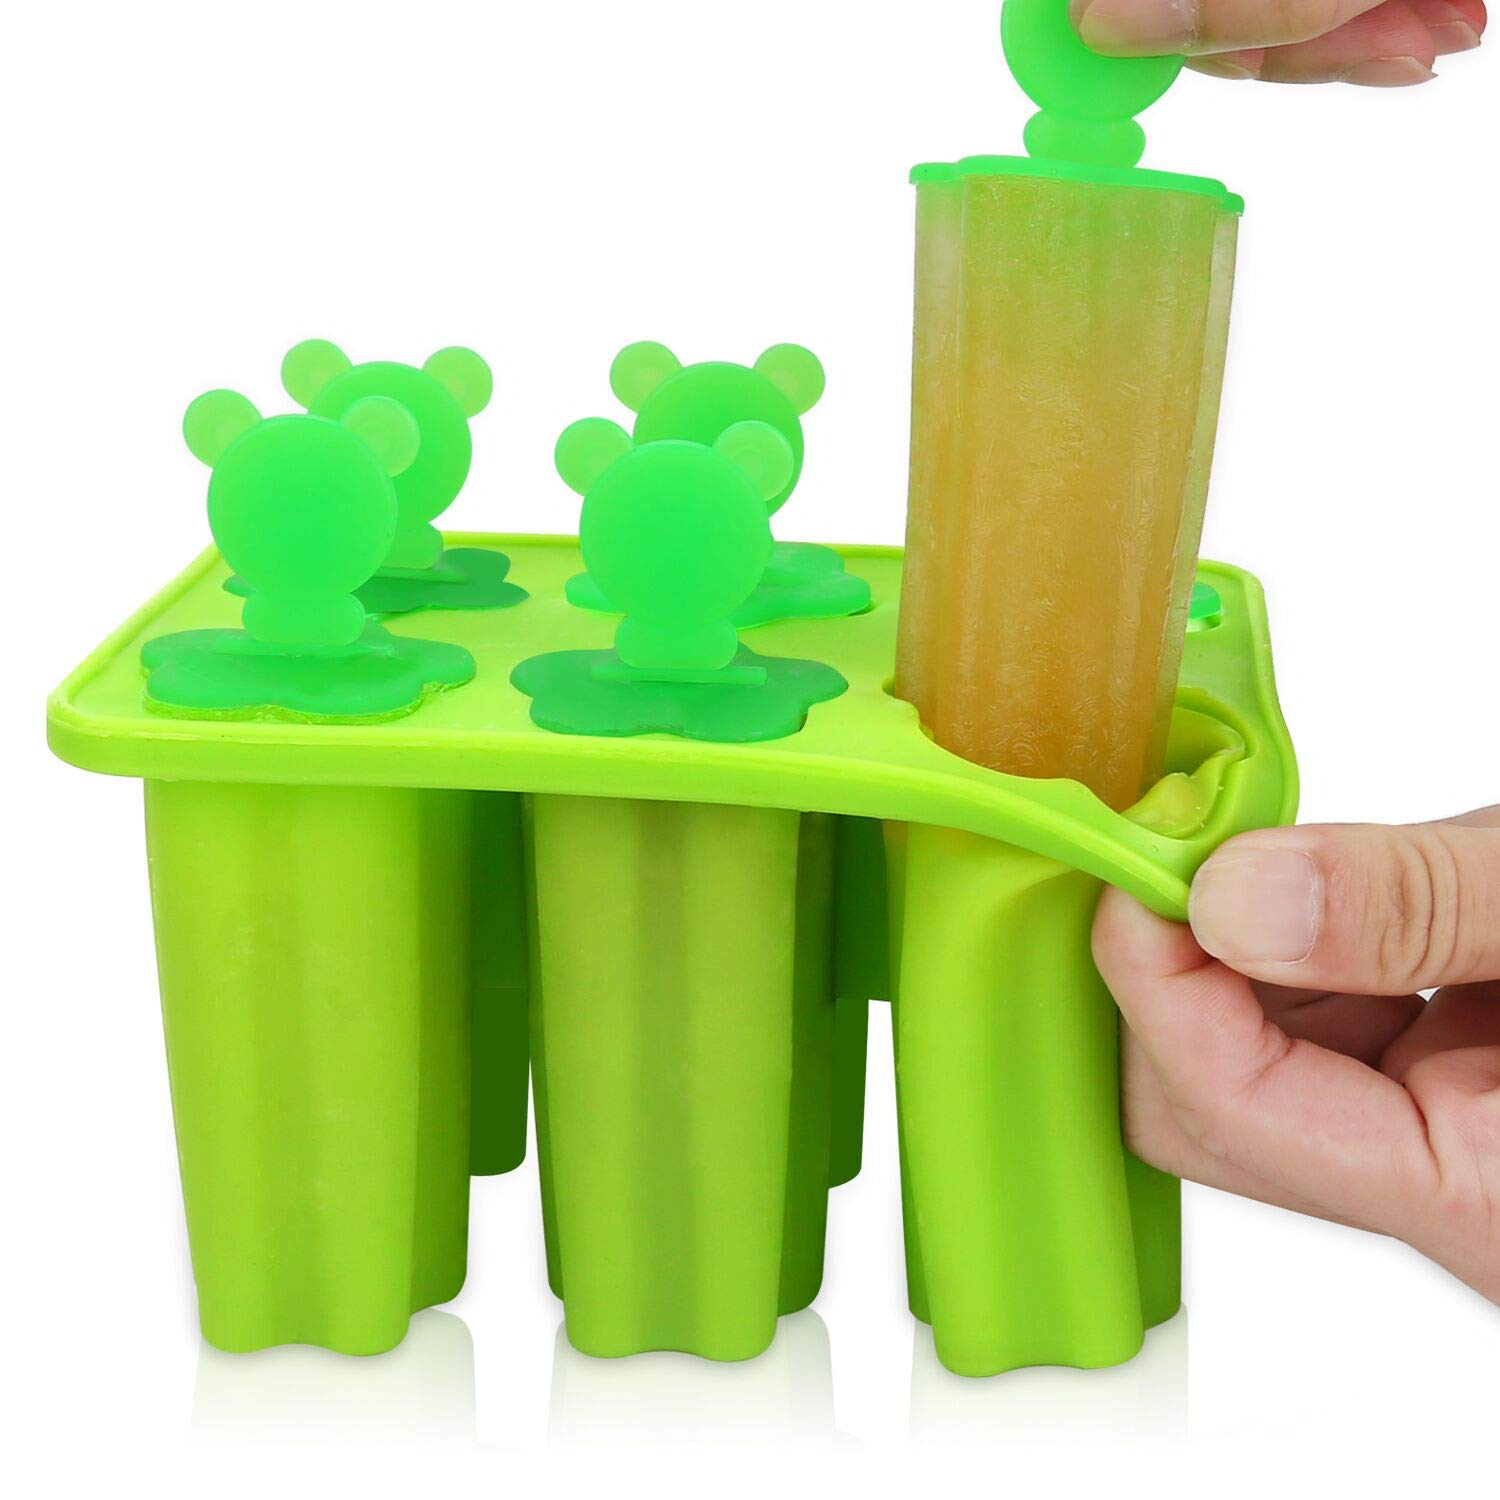 Popsicle Molds - Silicone Ice Pop Molds Set of 6 Easy Release Popsicle BPA Free FDA Approved Ice Pop Maker(Green)